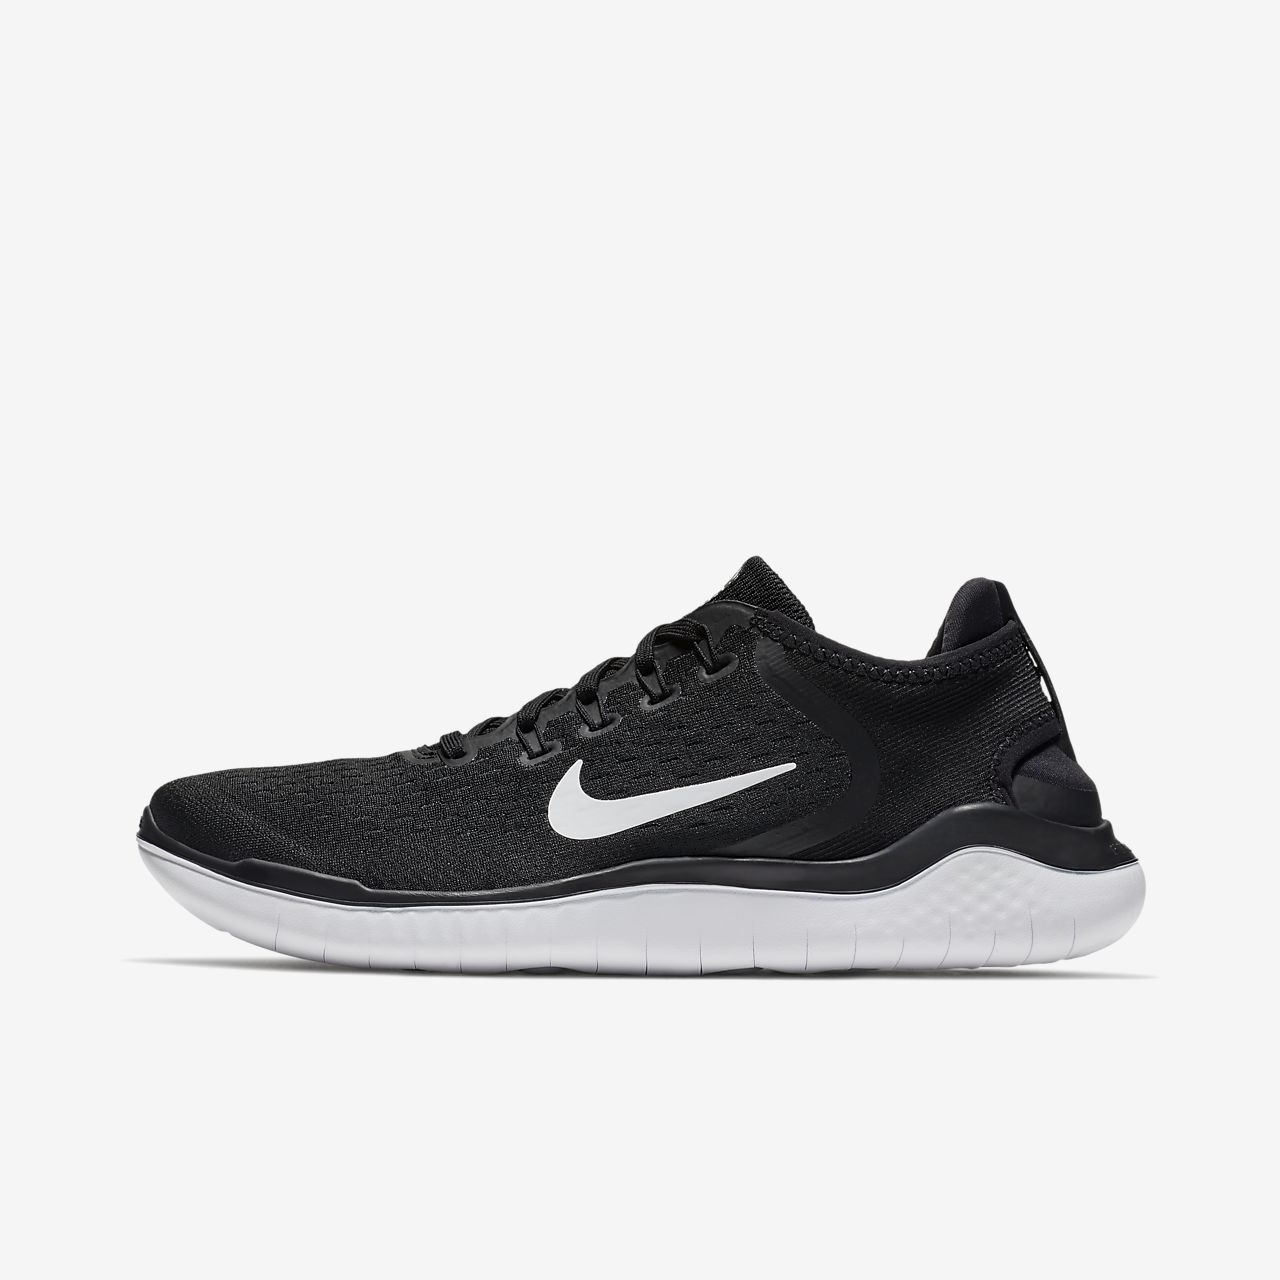 info for 262d3 d4e17 Men s Running Shoe. Nike Free RN 2018